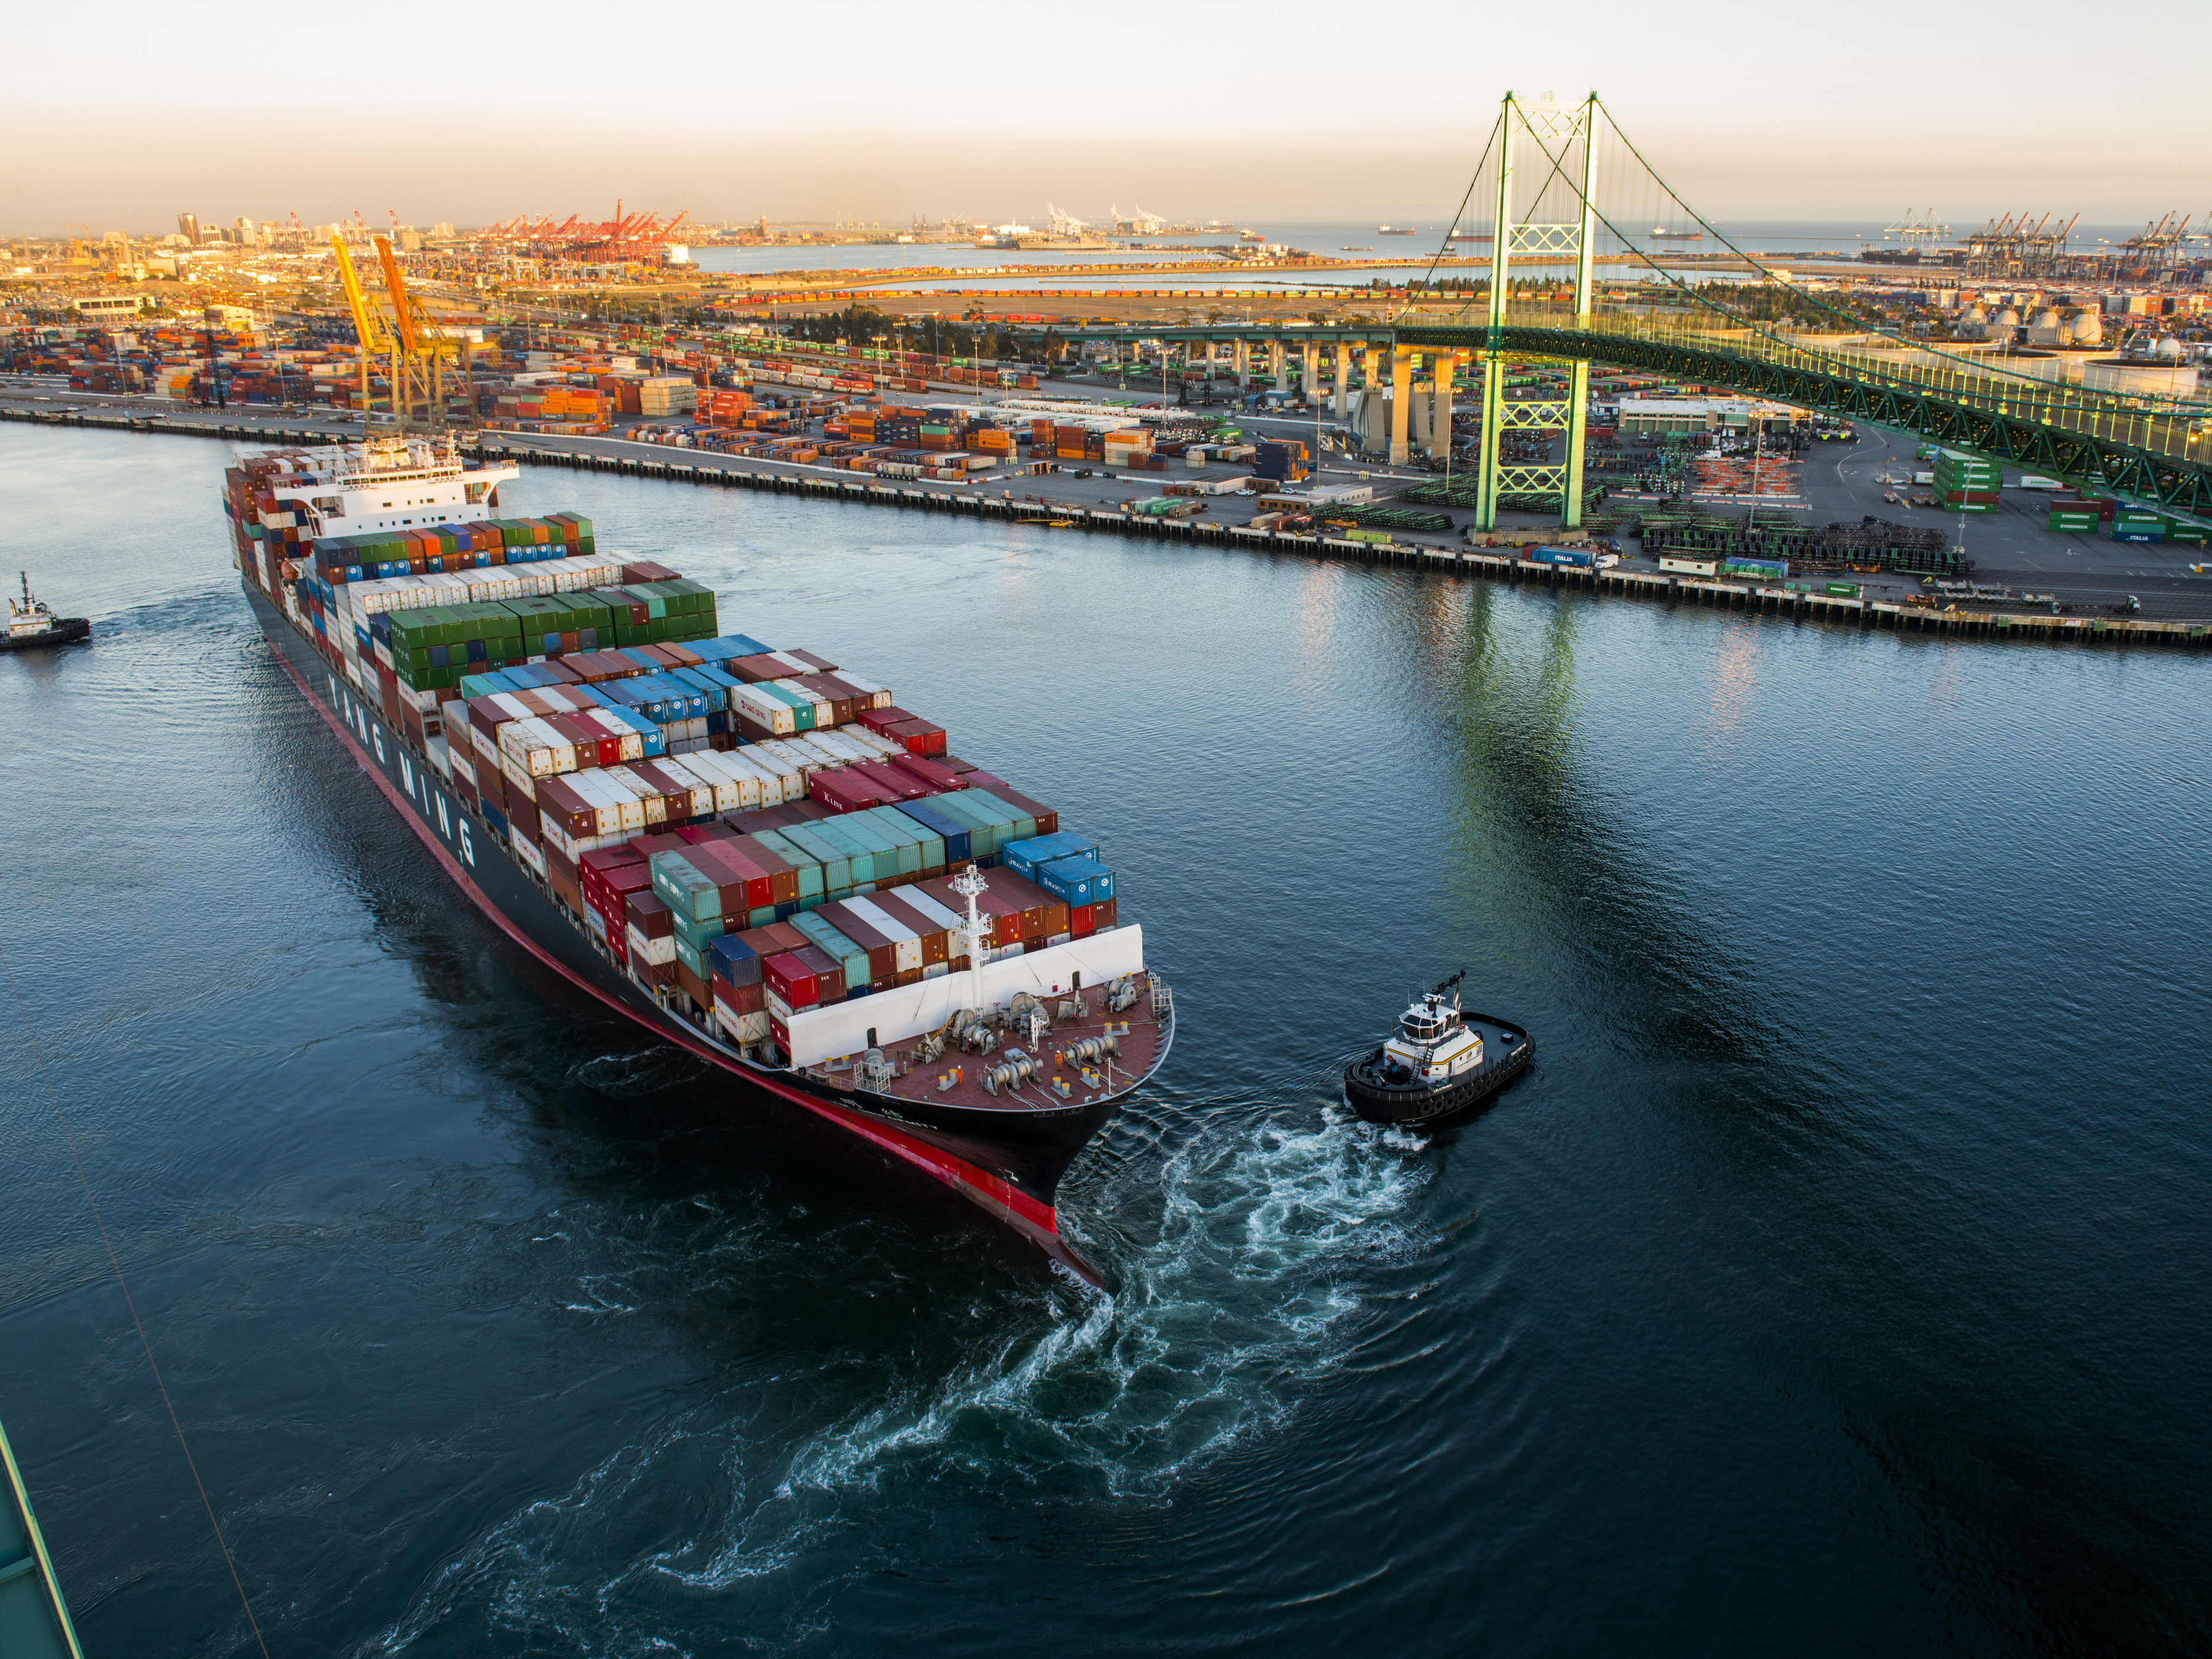 Warning Bells Sound for U.S. Economy As Virus Squeezes Ports